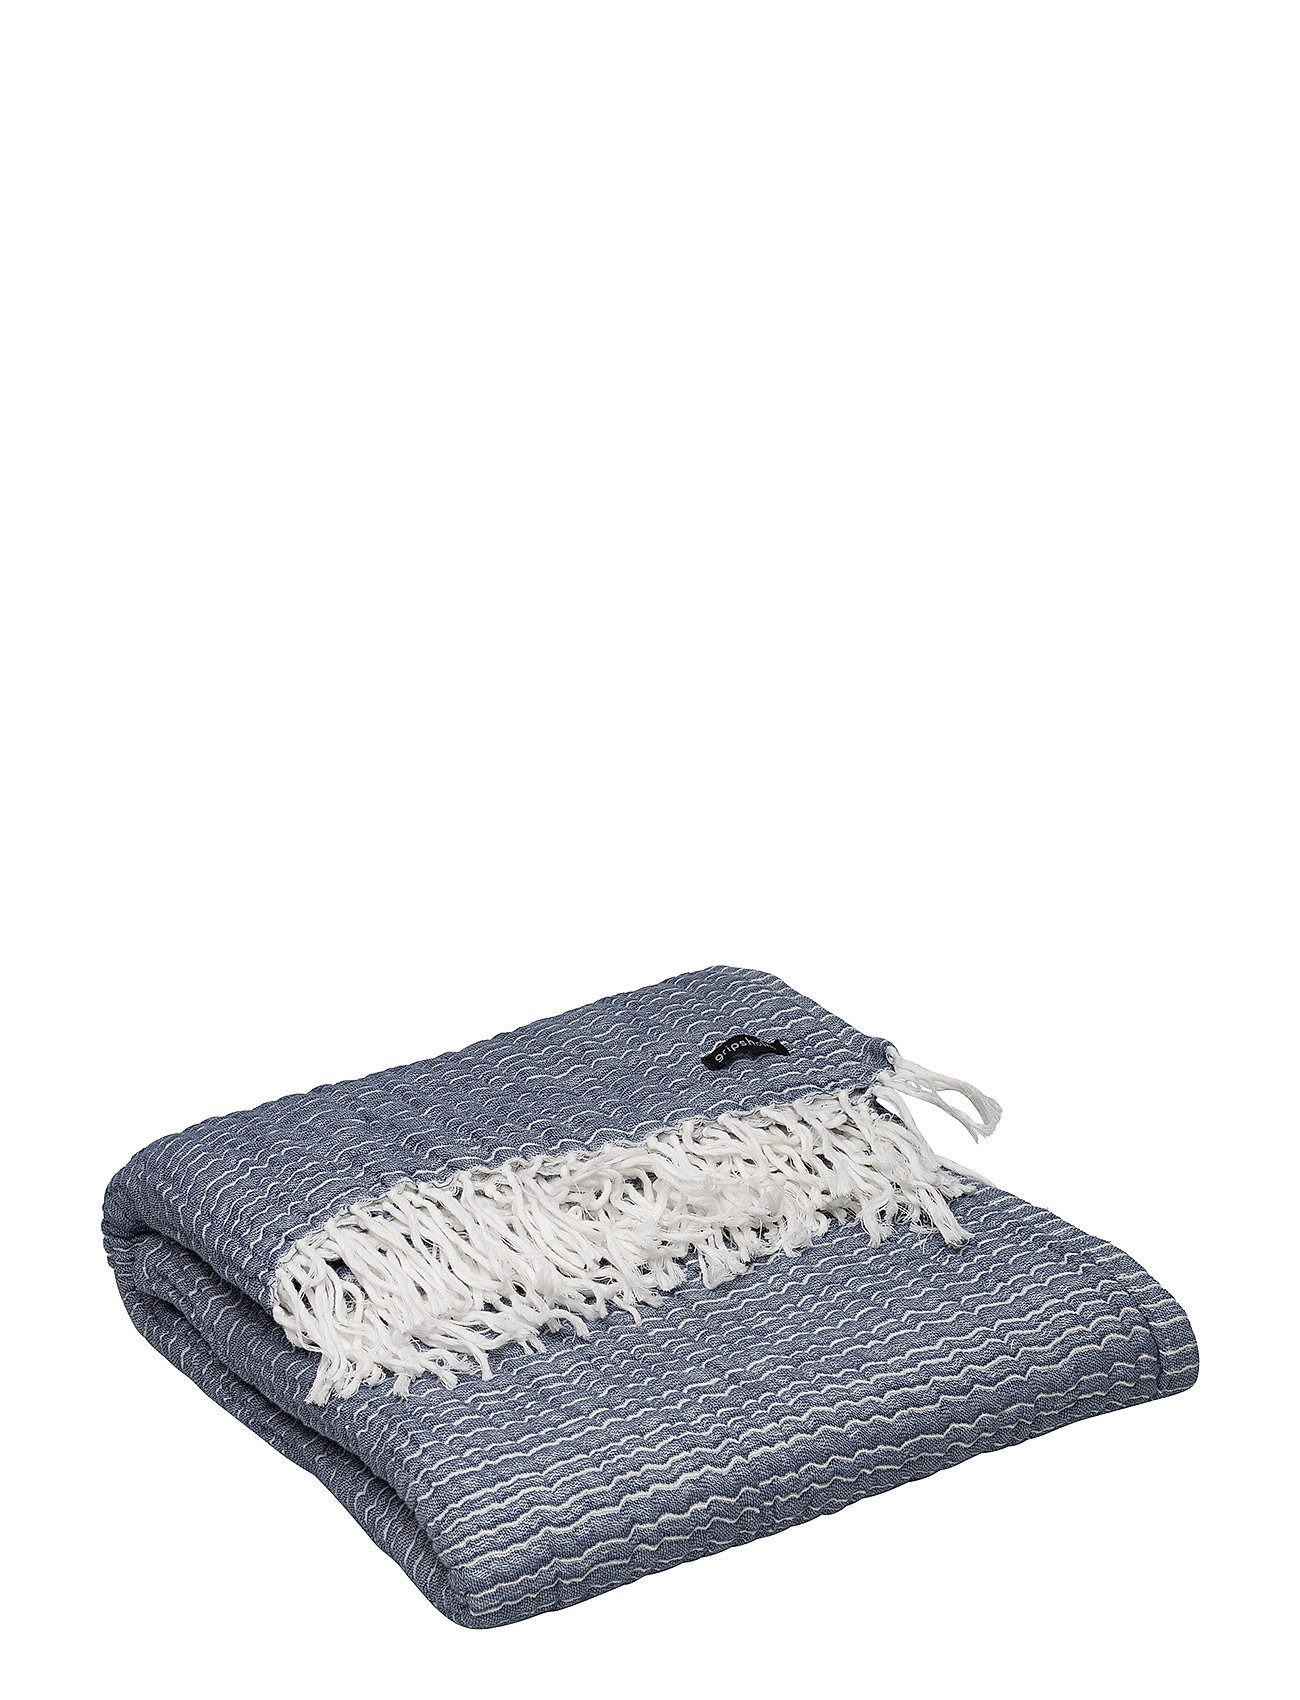 Gripsholm THROW WASHED COTTON - VINTAGE INDIGO